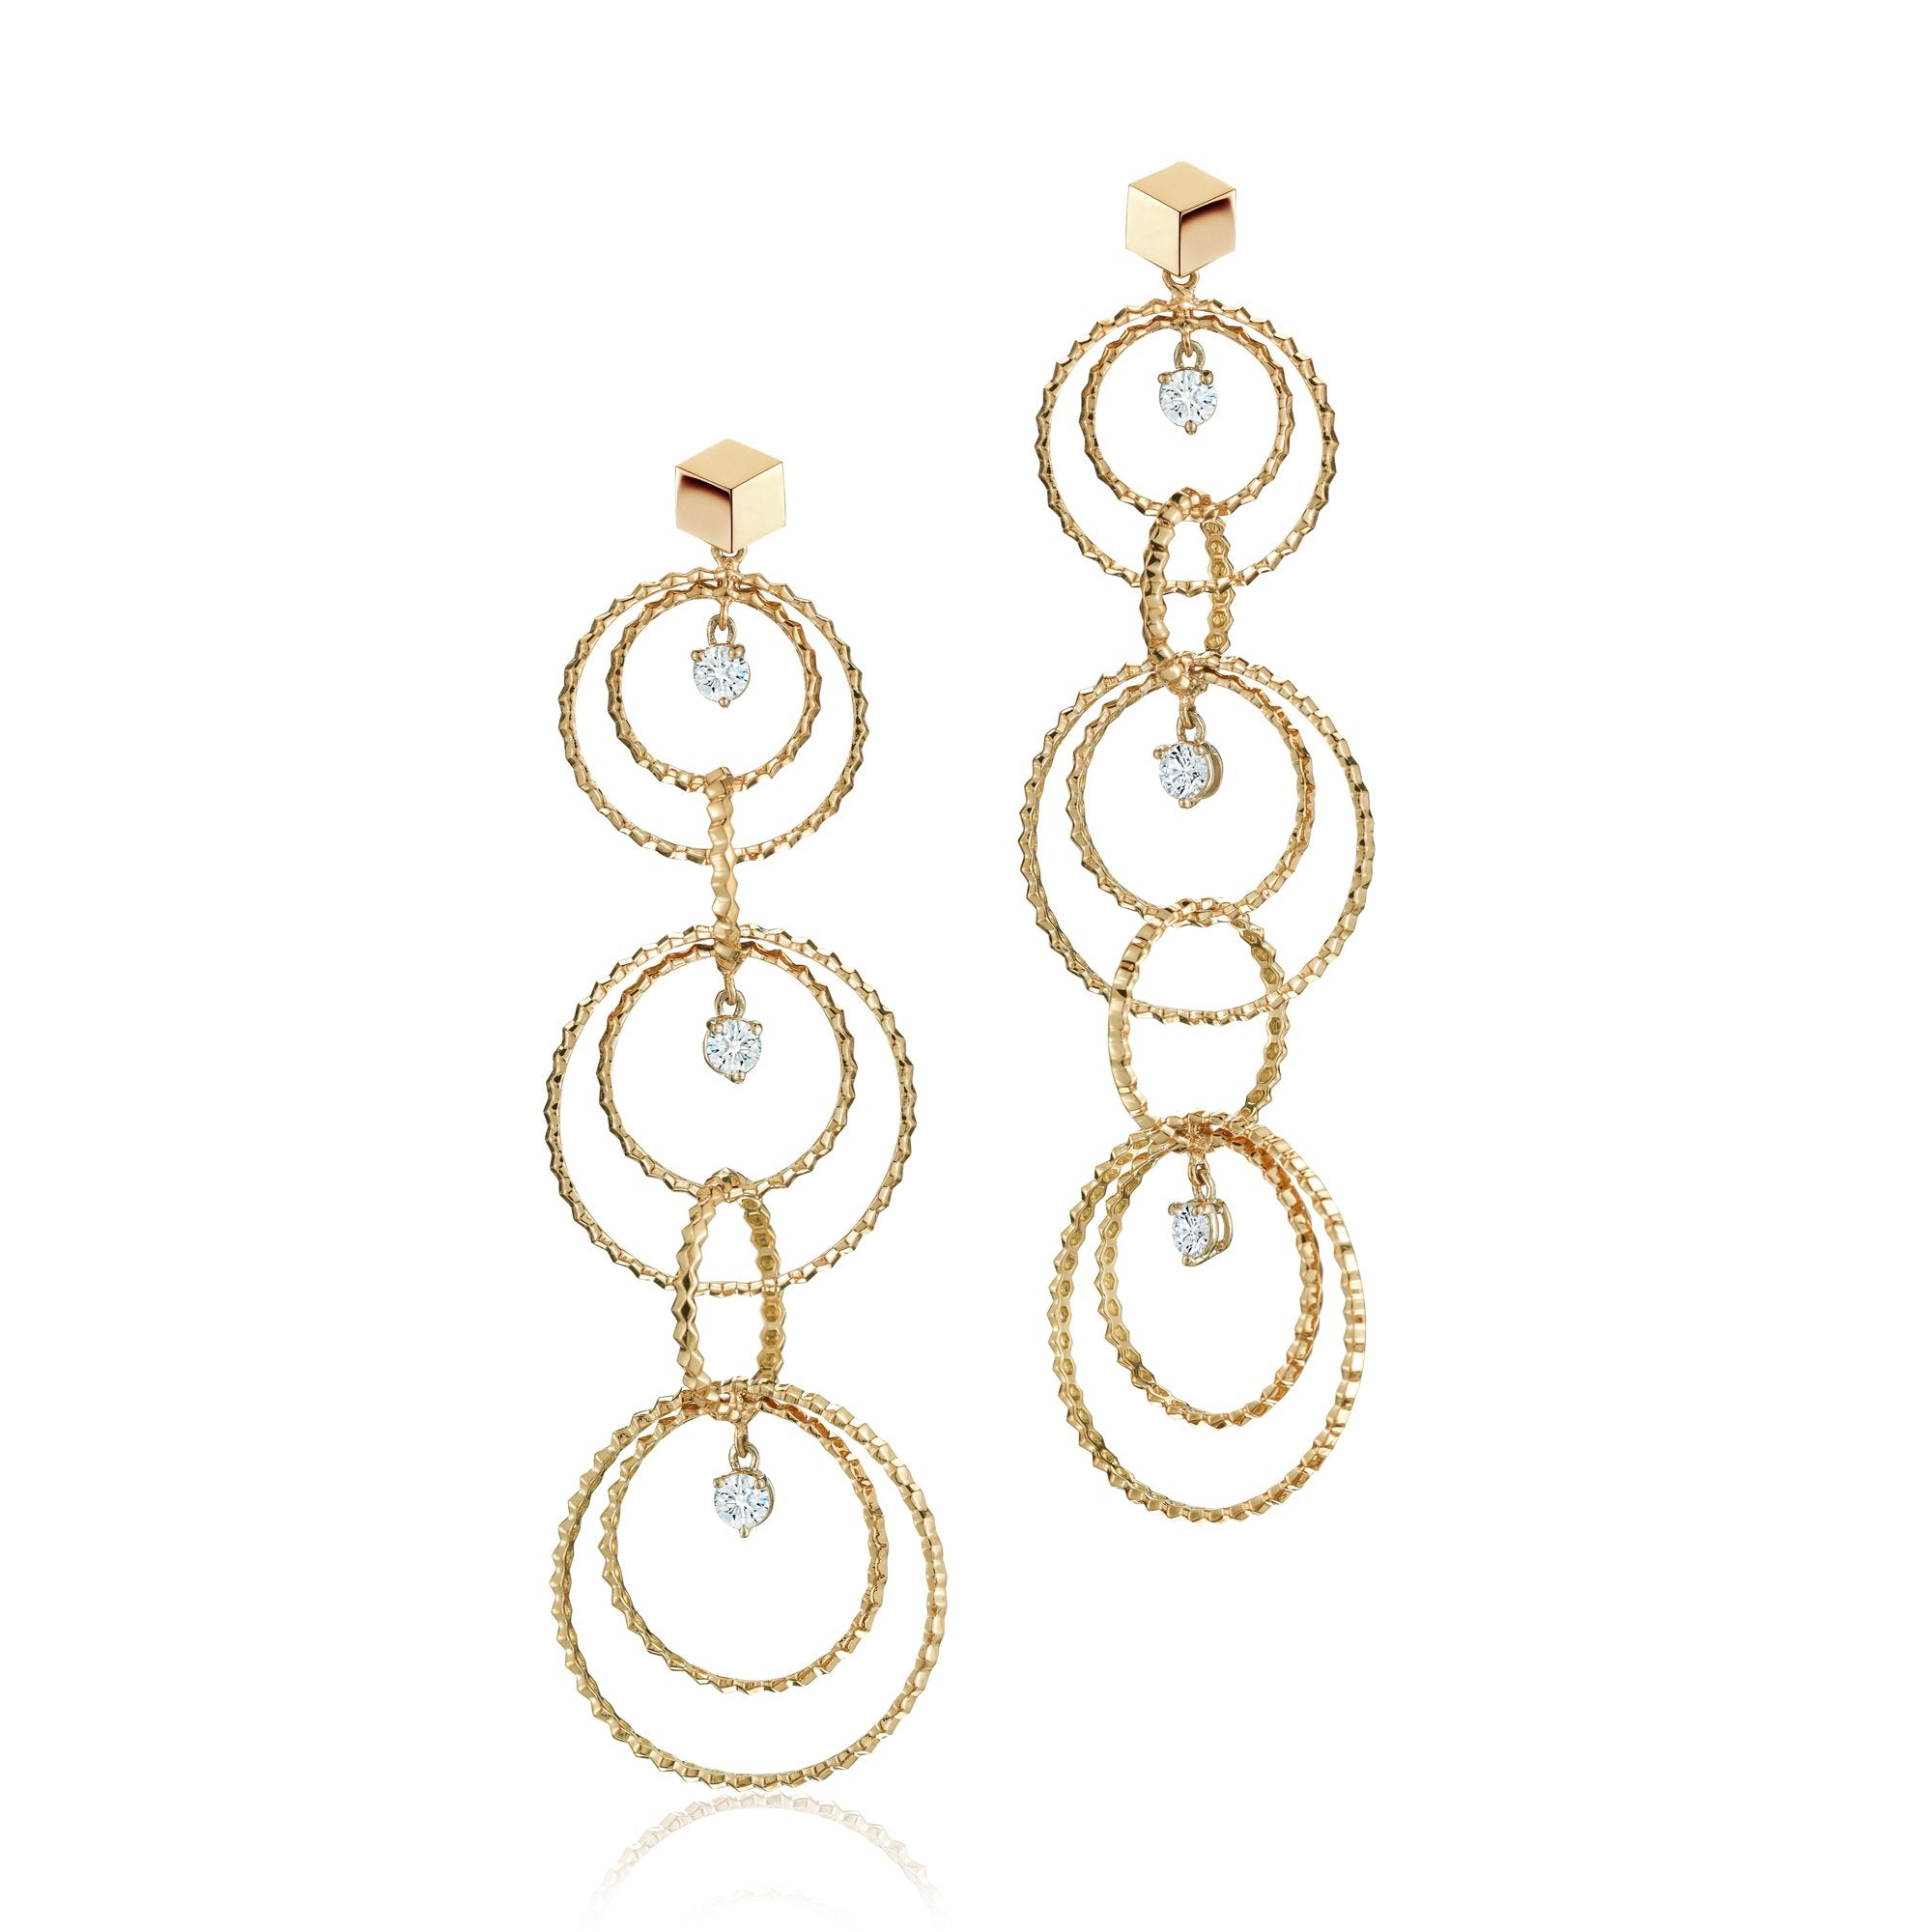 Yellow Gold and Diamond 'Brillante® Circoli' Earrings, Long - Paolo Costagli - 1